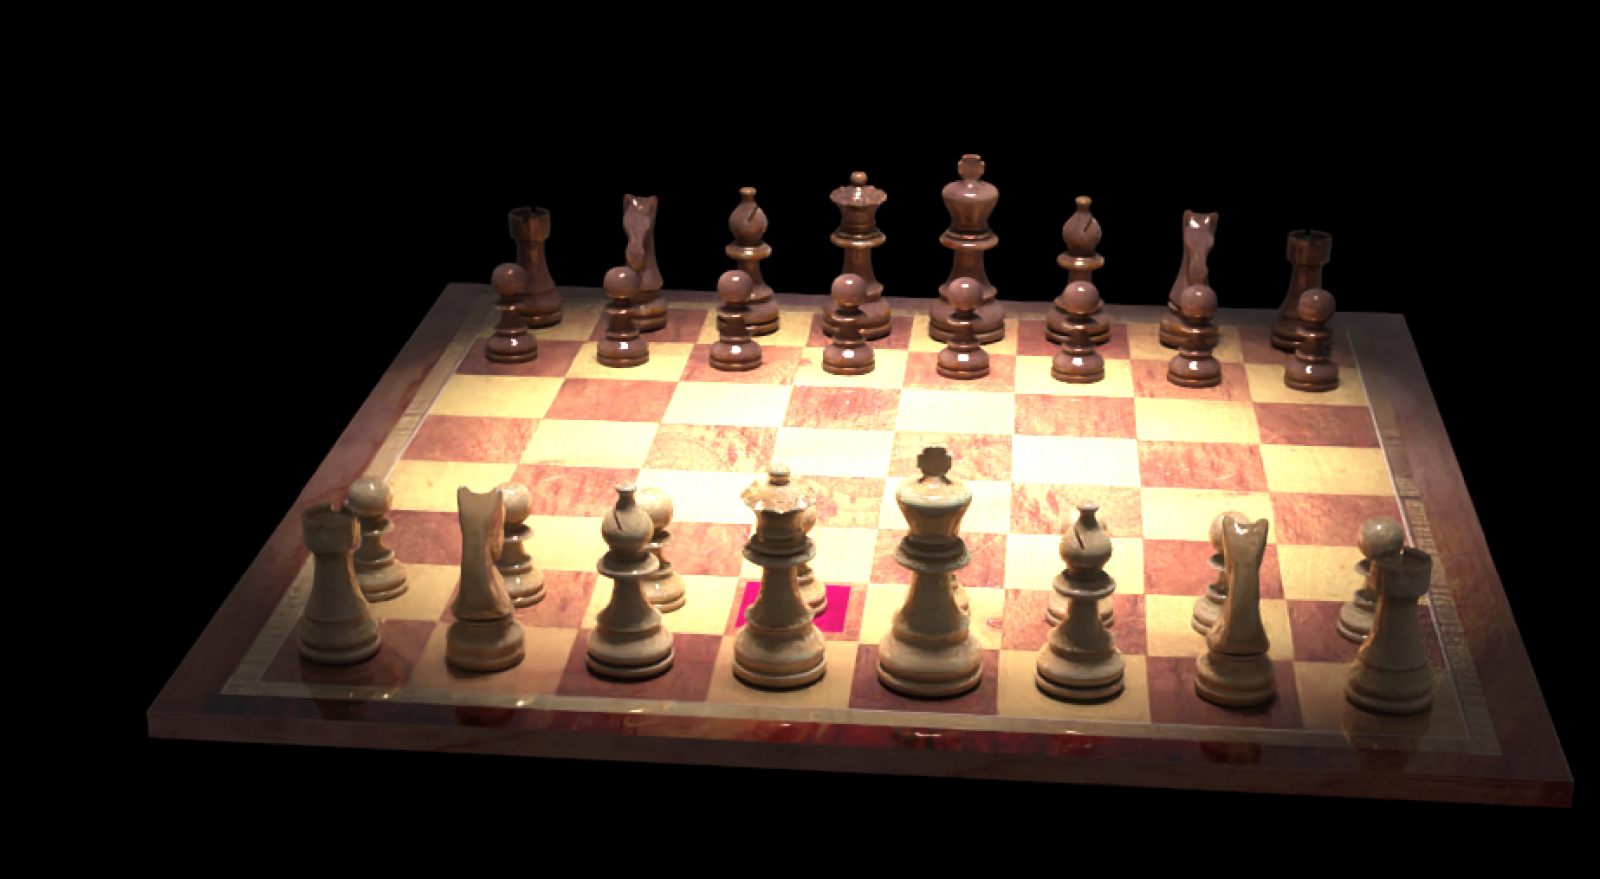 Fritz 17 and 3D raytracing chess pieces and boards-1